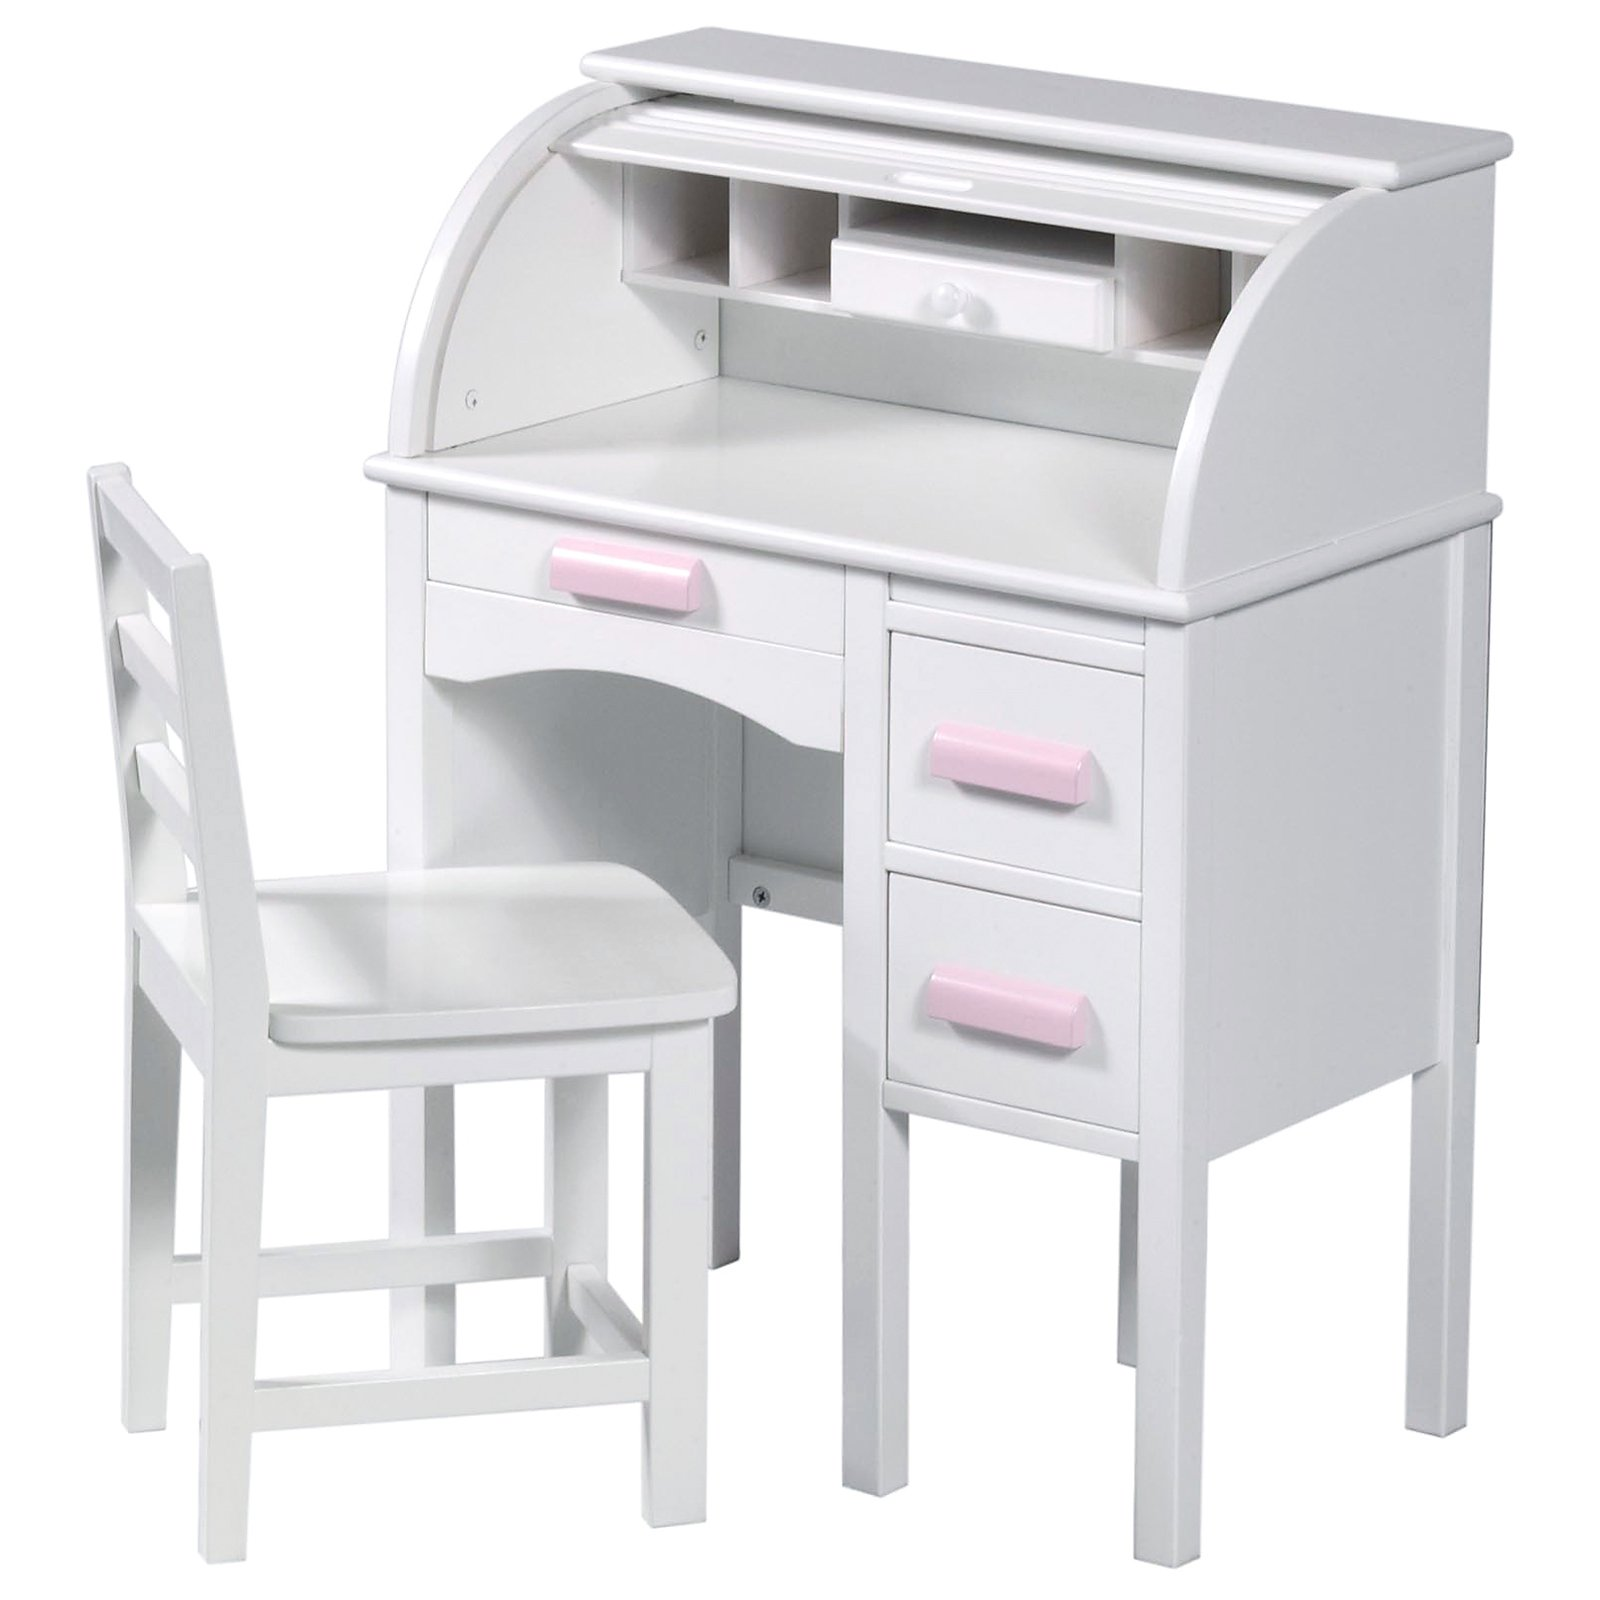 Guidecraft Roll Top Kids Desk With Chair, Multiple Colors   Walmart.com